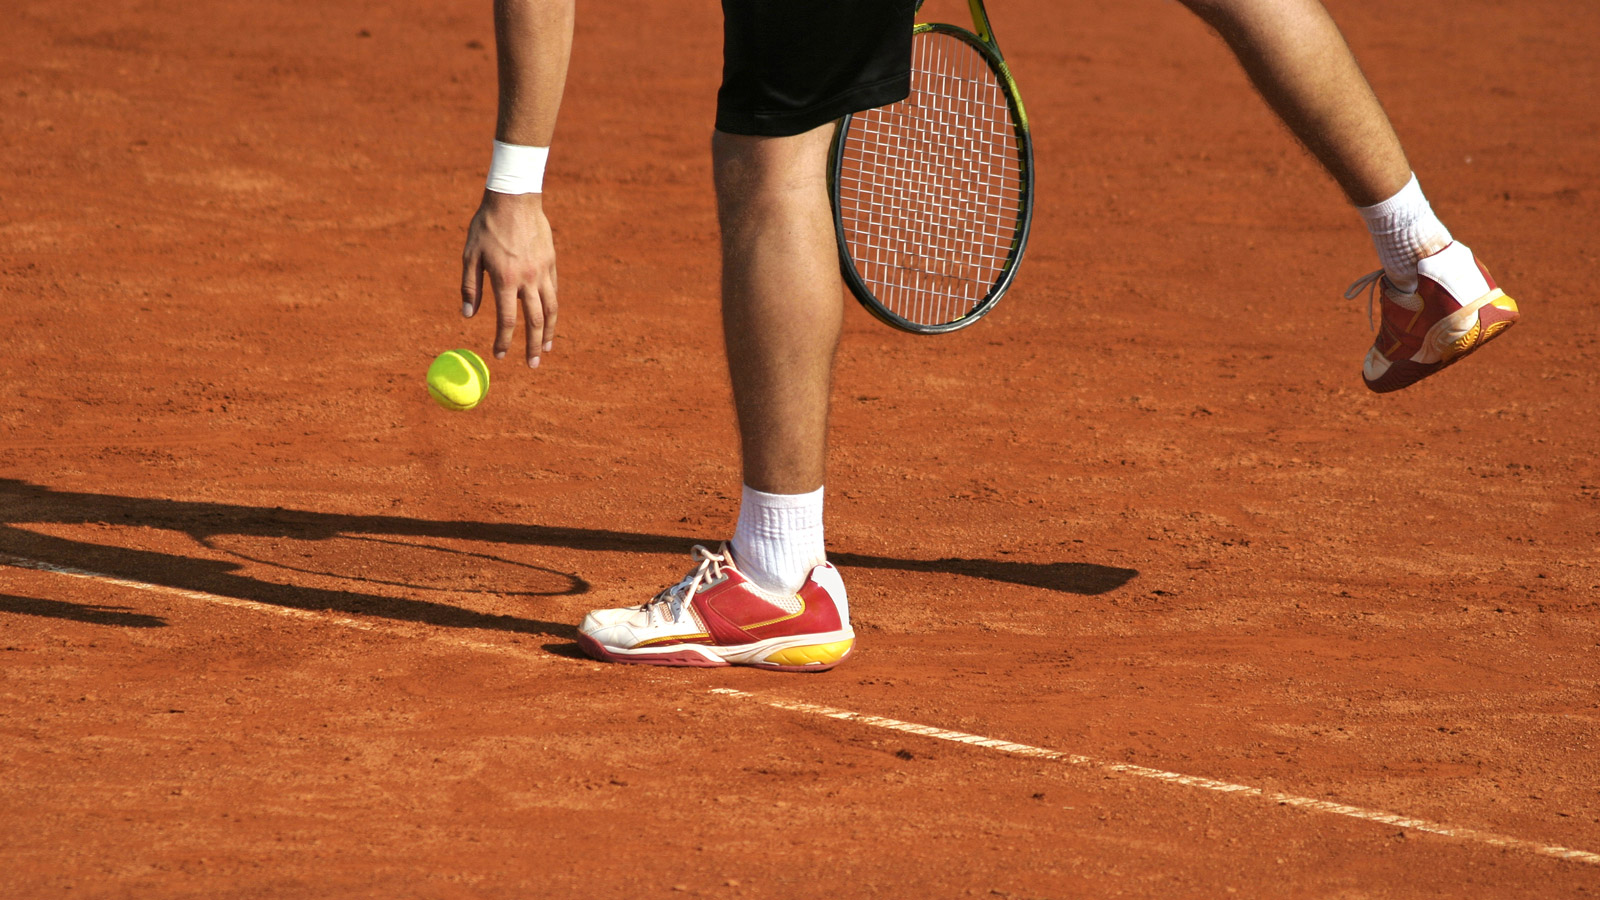 The fastest sports tennis betting book provider how do betting numbers work